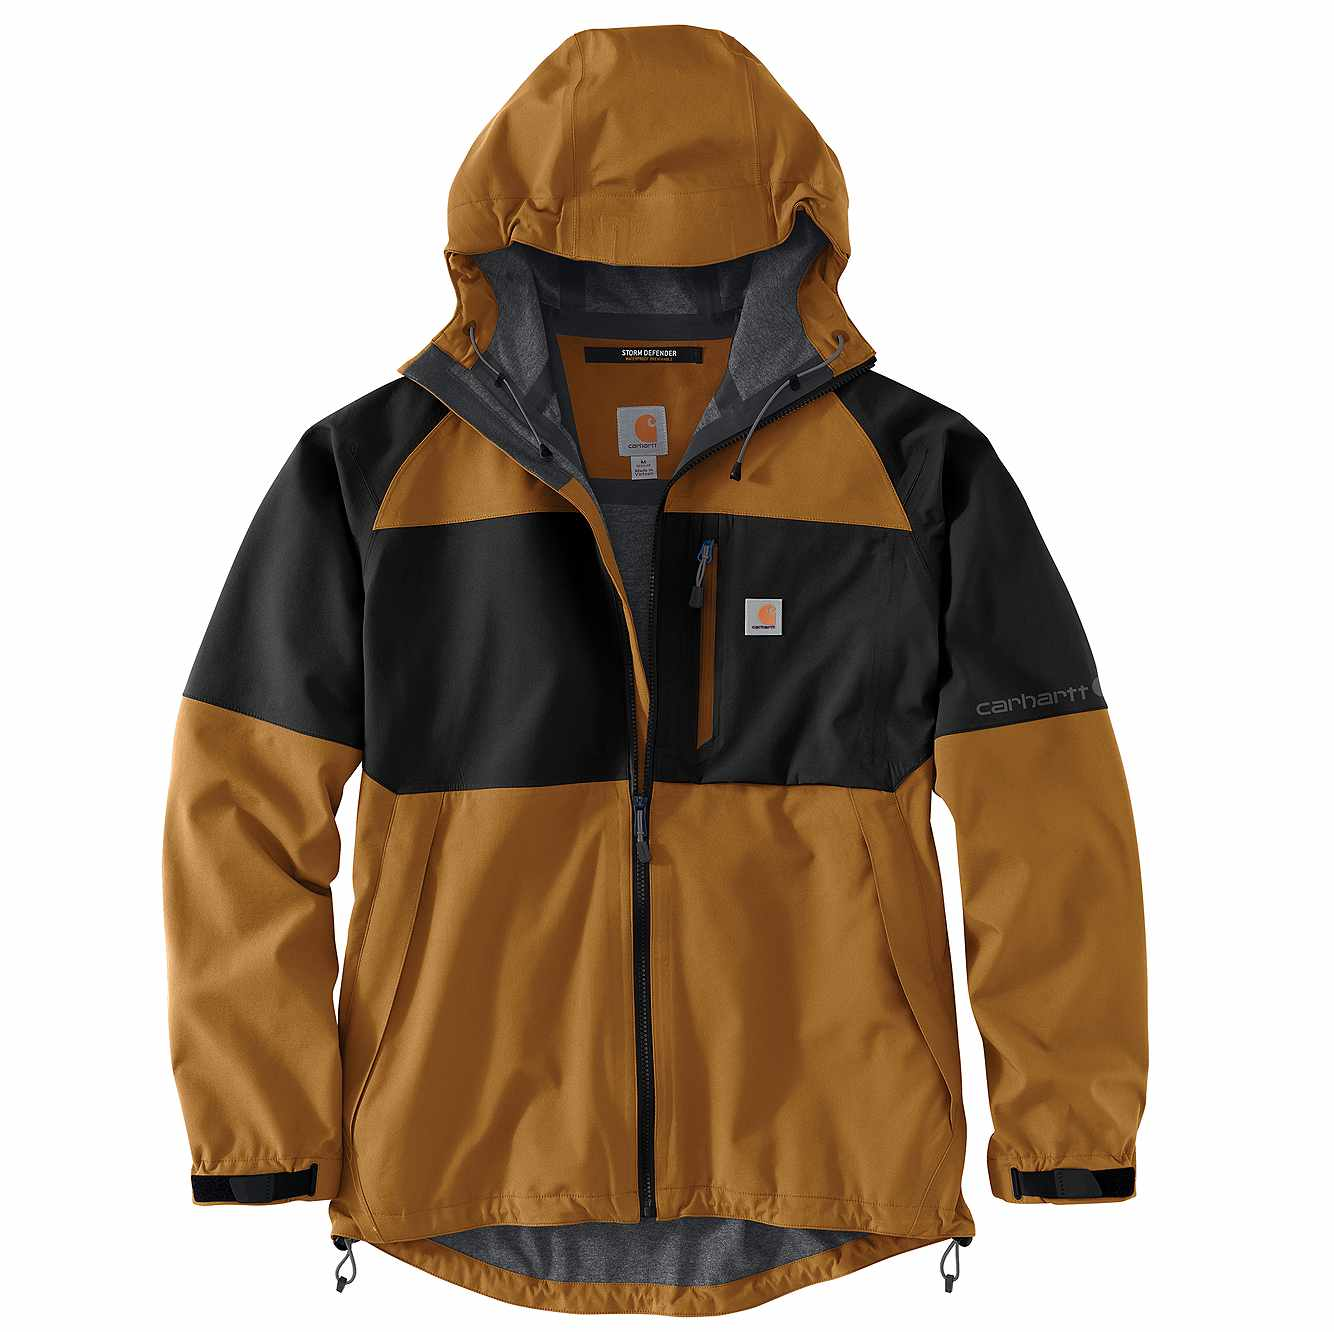 Picture of Storm Defender® Carhartt Force® Hooded Jacket in Black/Carhartt Brown